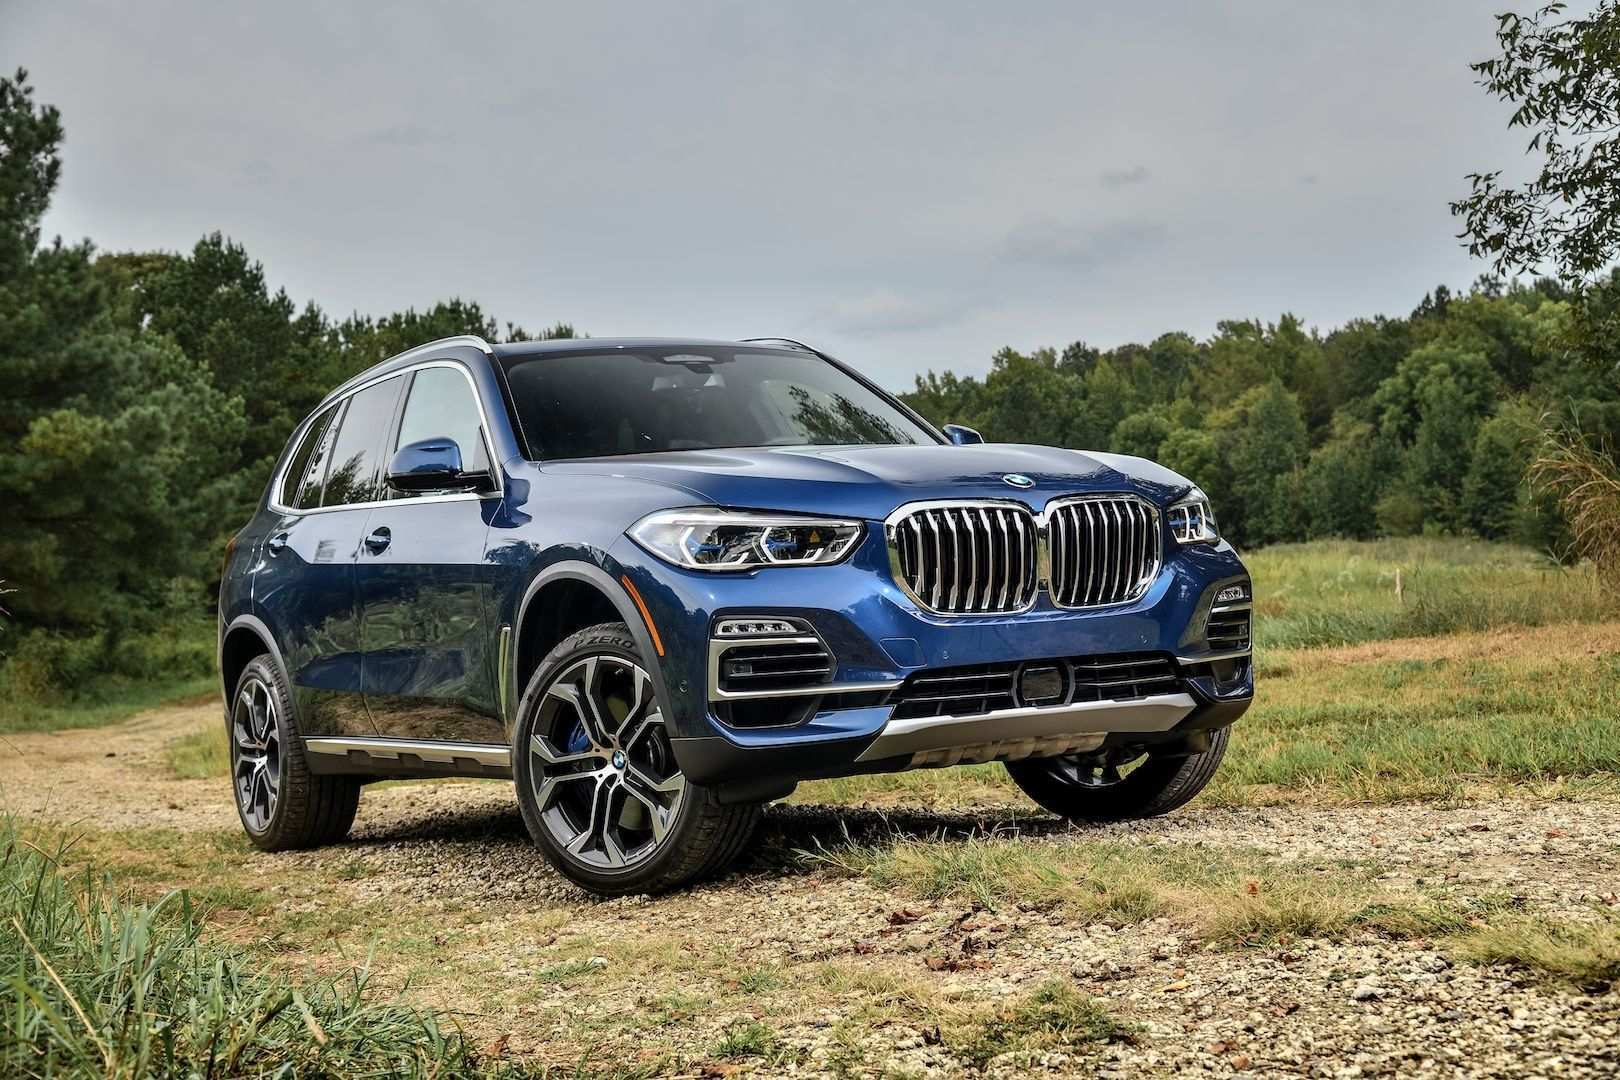 32 Concept of 2019 Bmw Pro Tailgate Engine by 2019 Bmw Pro Tailgate